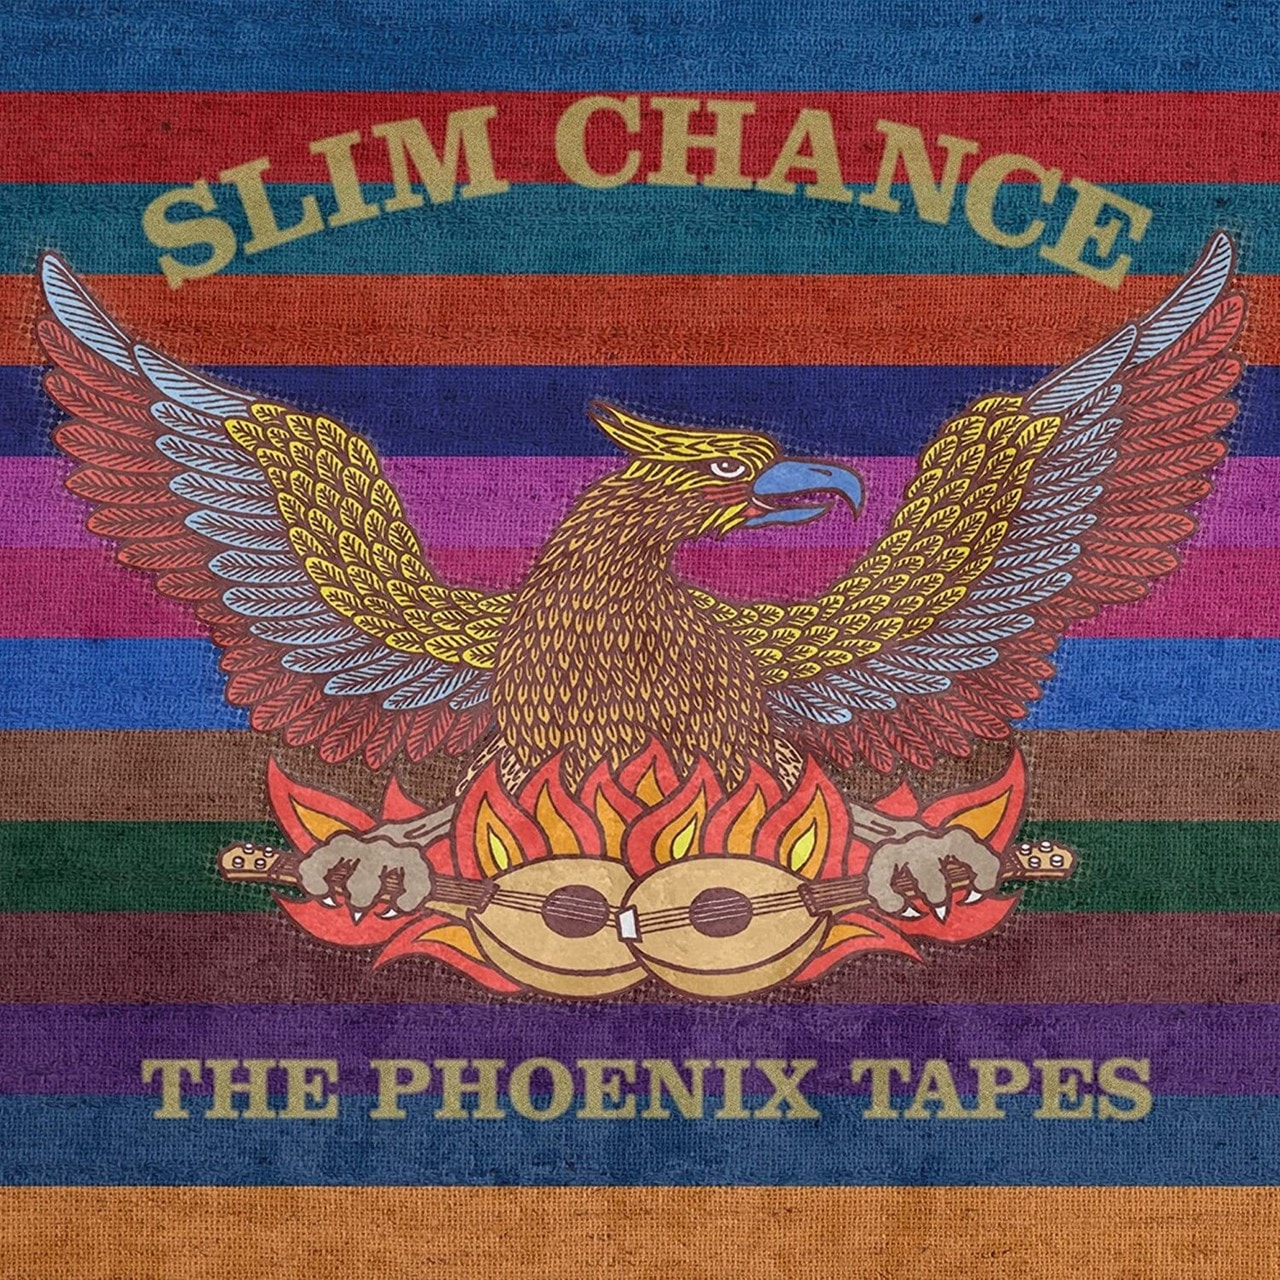 The Phoenix Tapes - 1